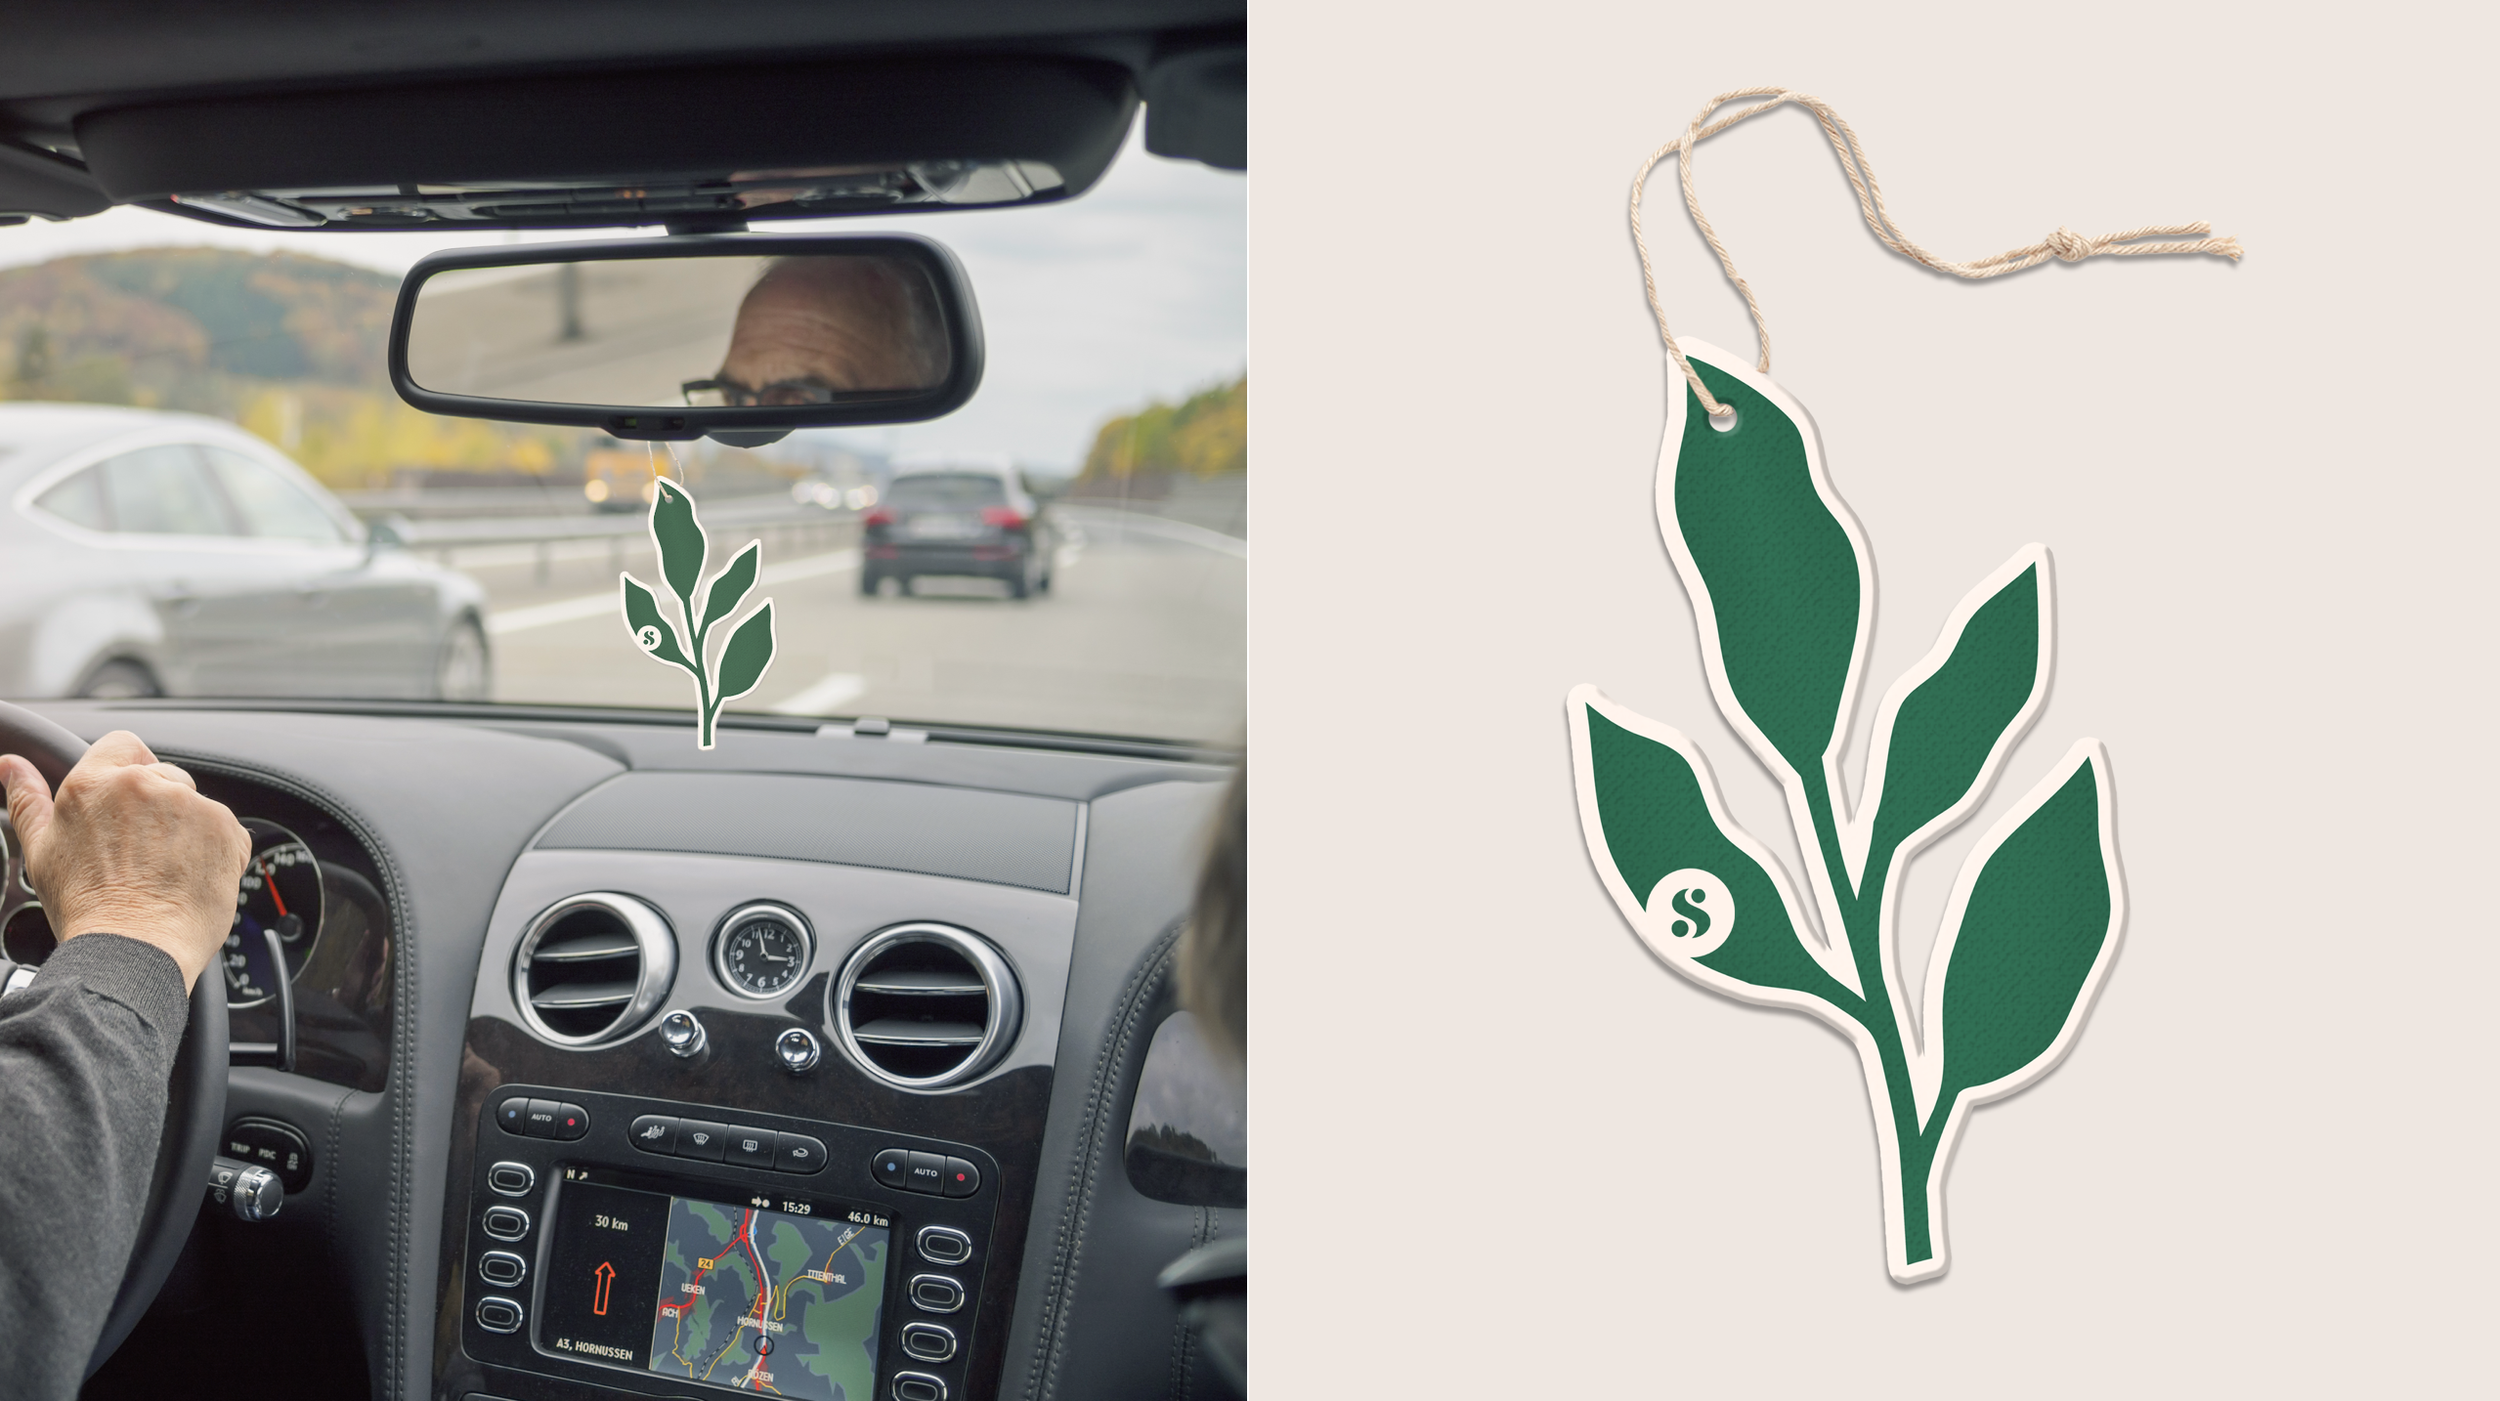 The clary sage plant is an aphrodisiac, so with these air fresheners, love is in the air wherever you go.